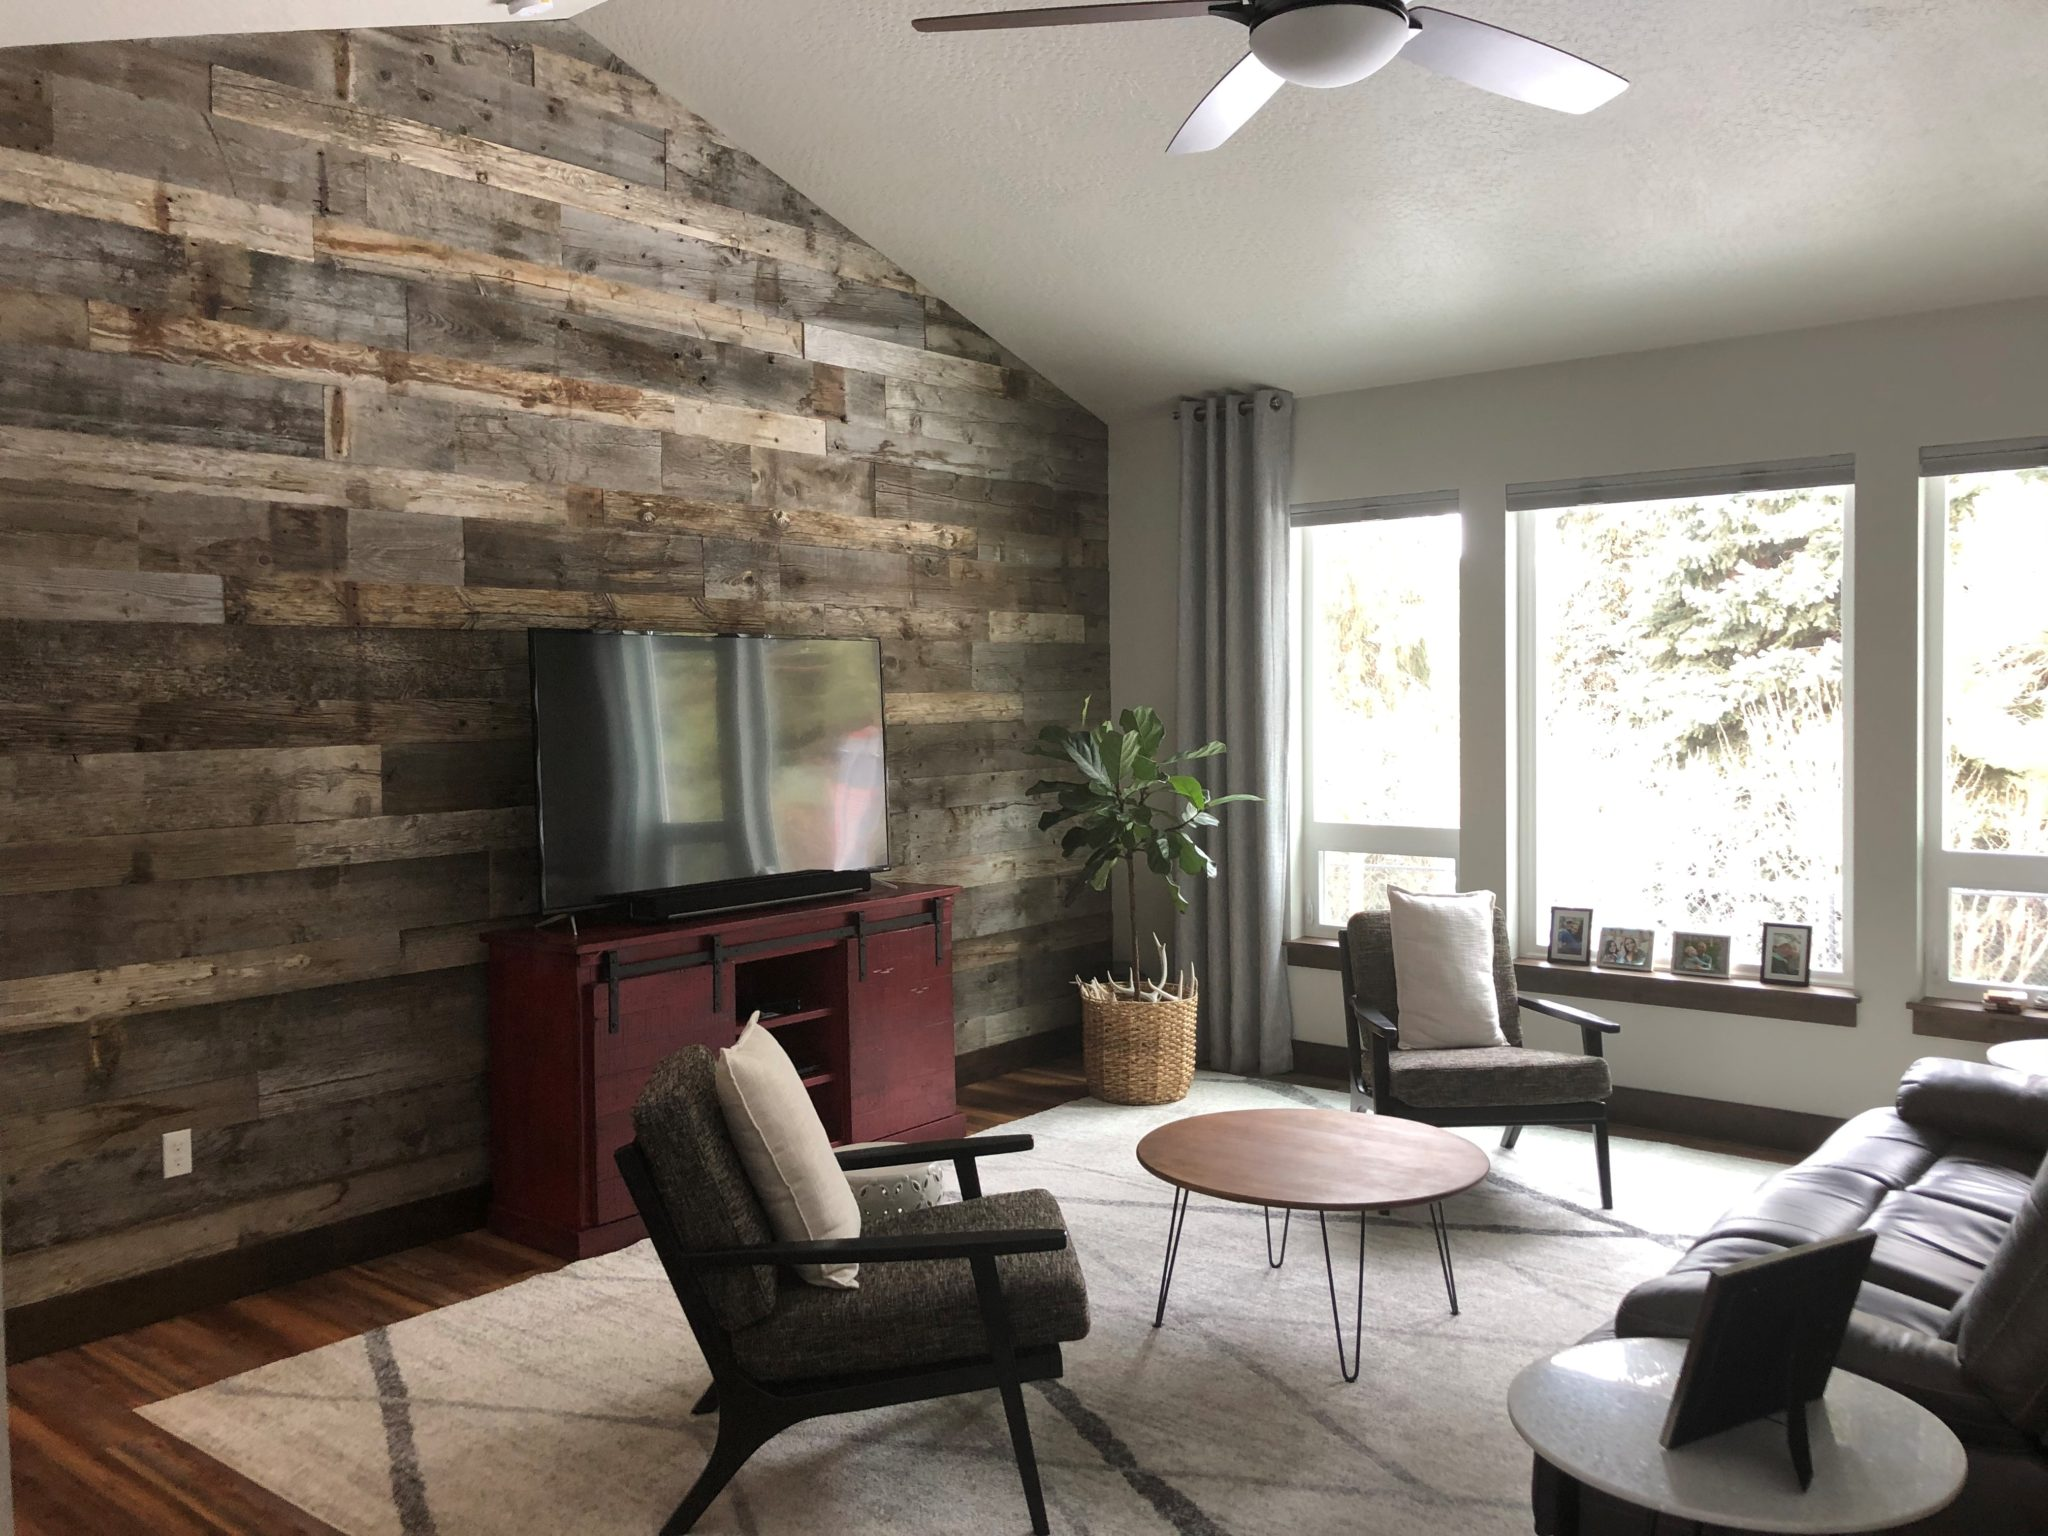 paneling in living room